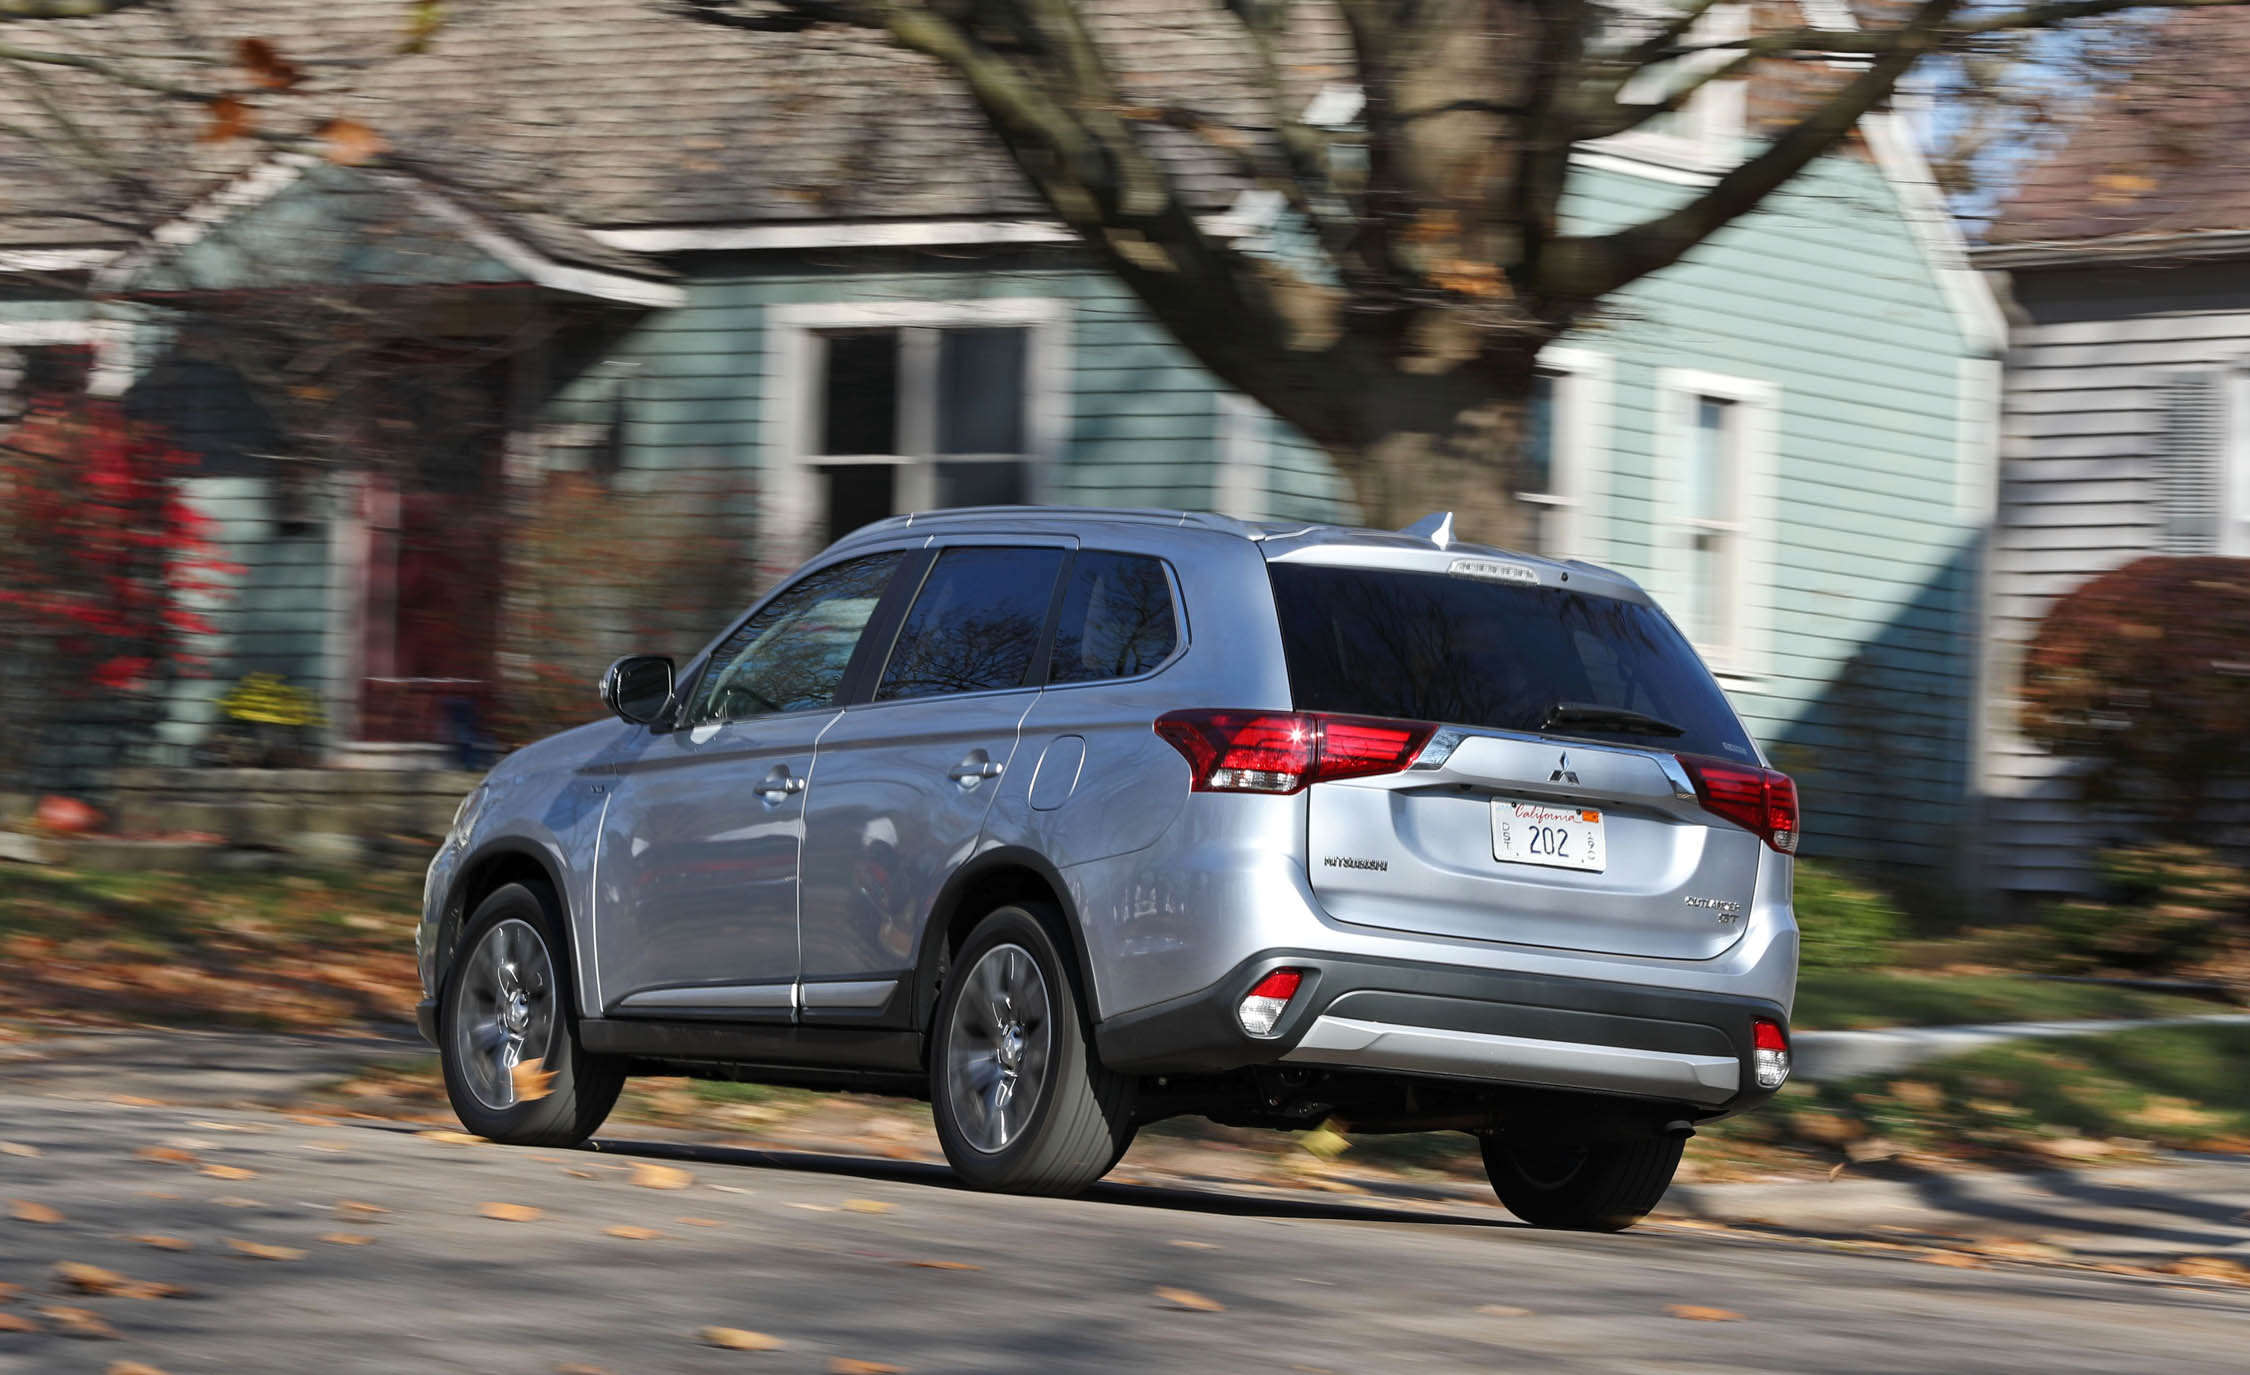 2017 Mitsubishi Outlander Gt Test Drive Side And Rear View (View 11 of 34)